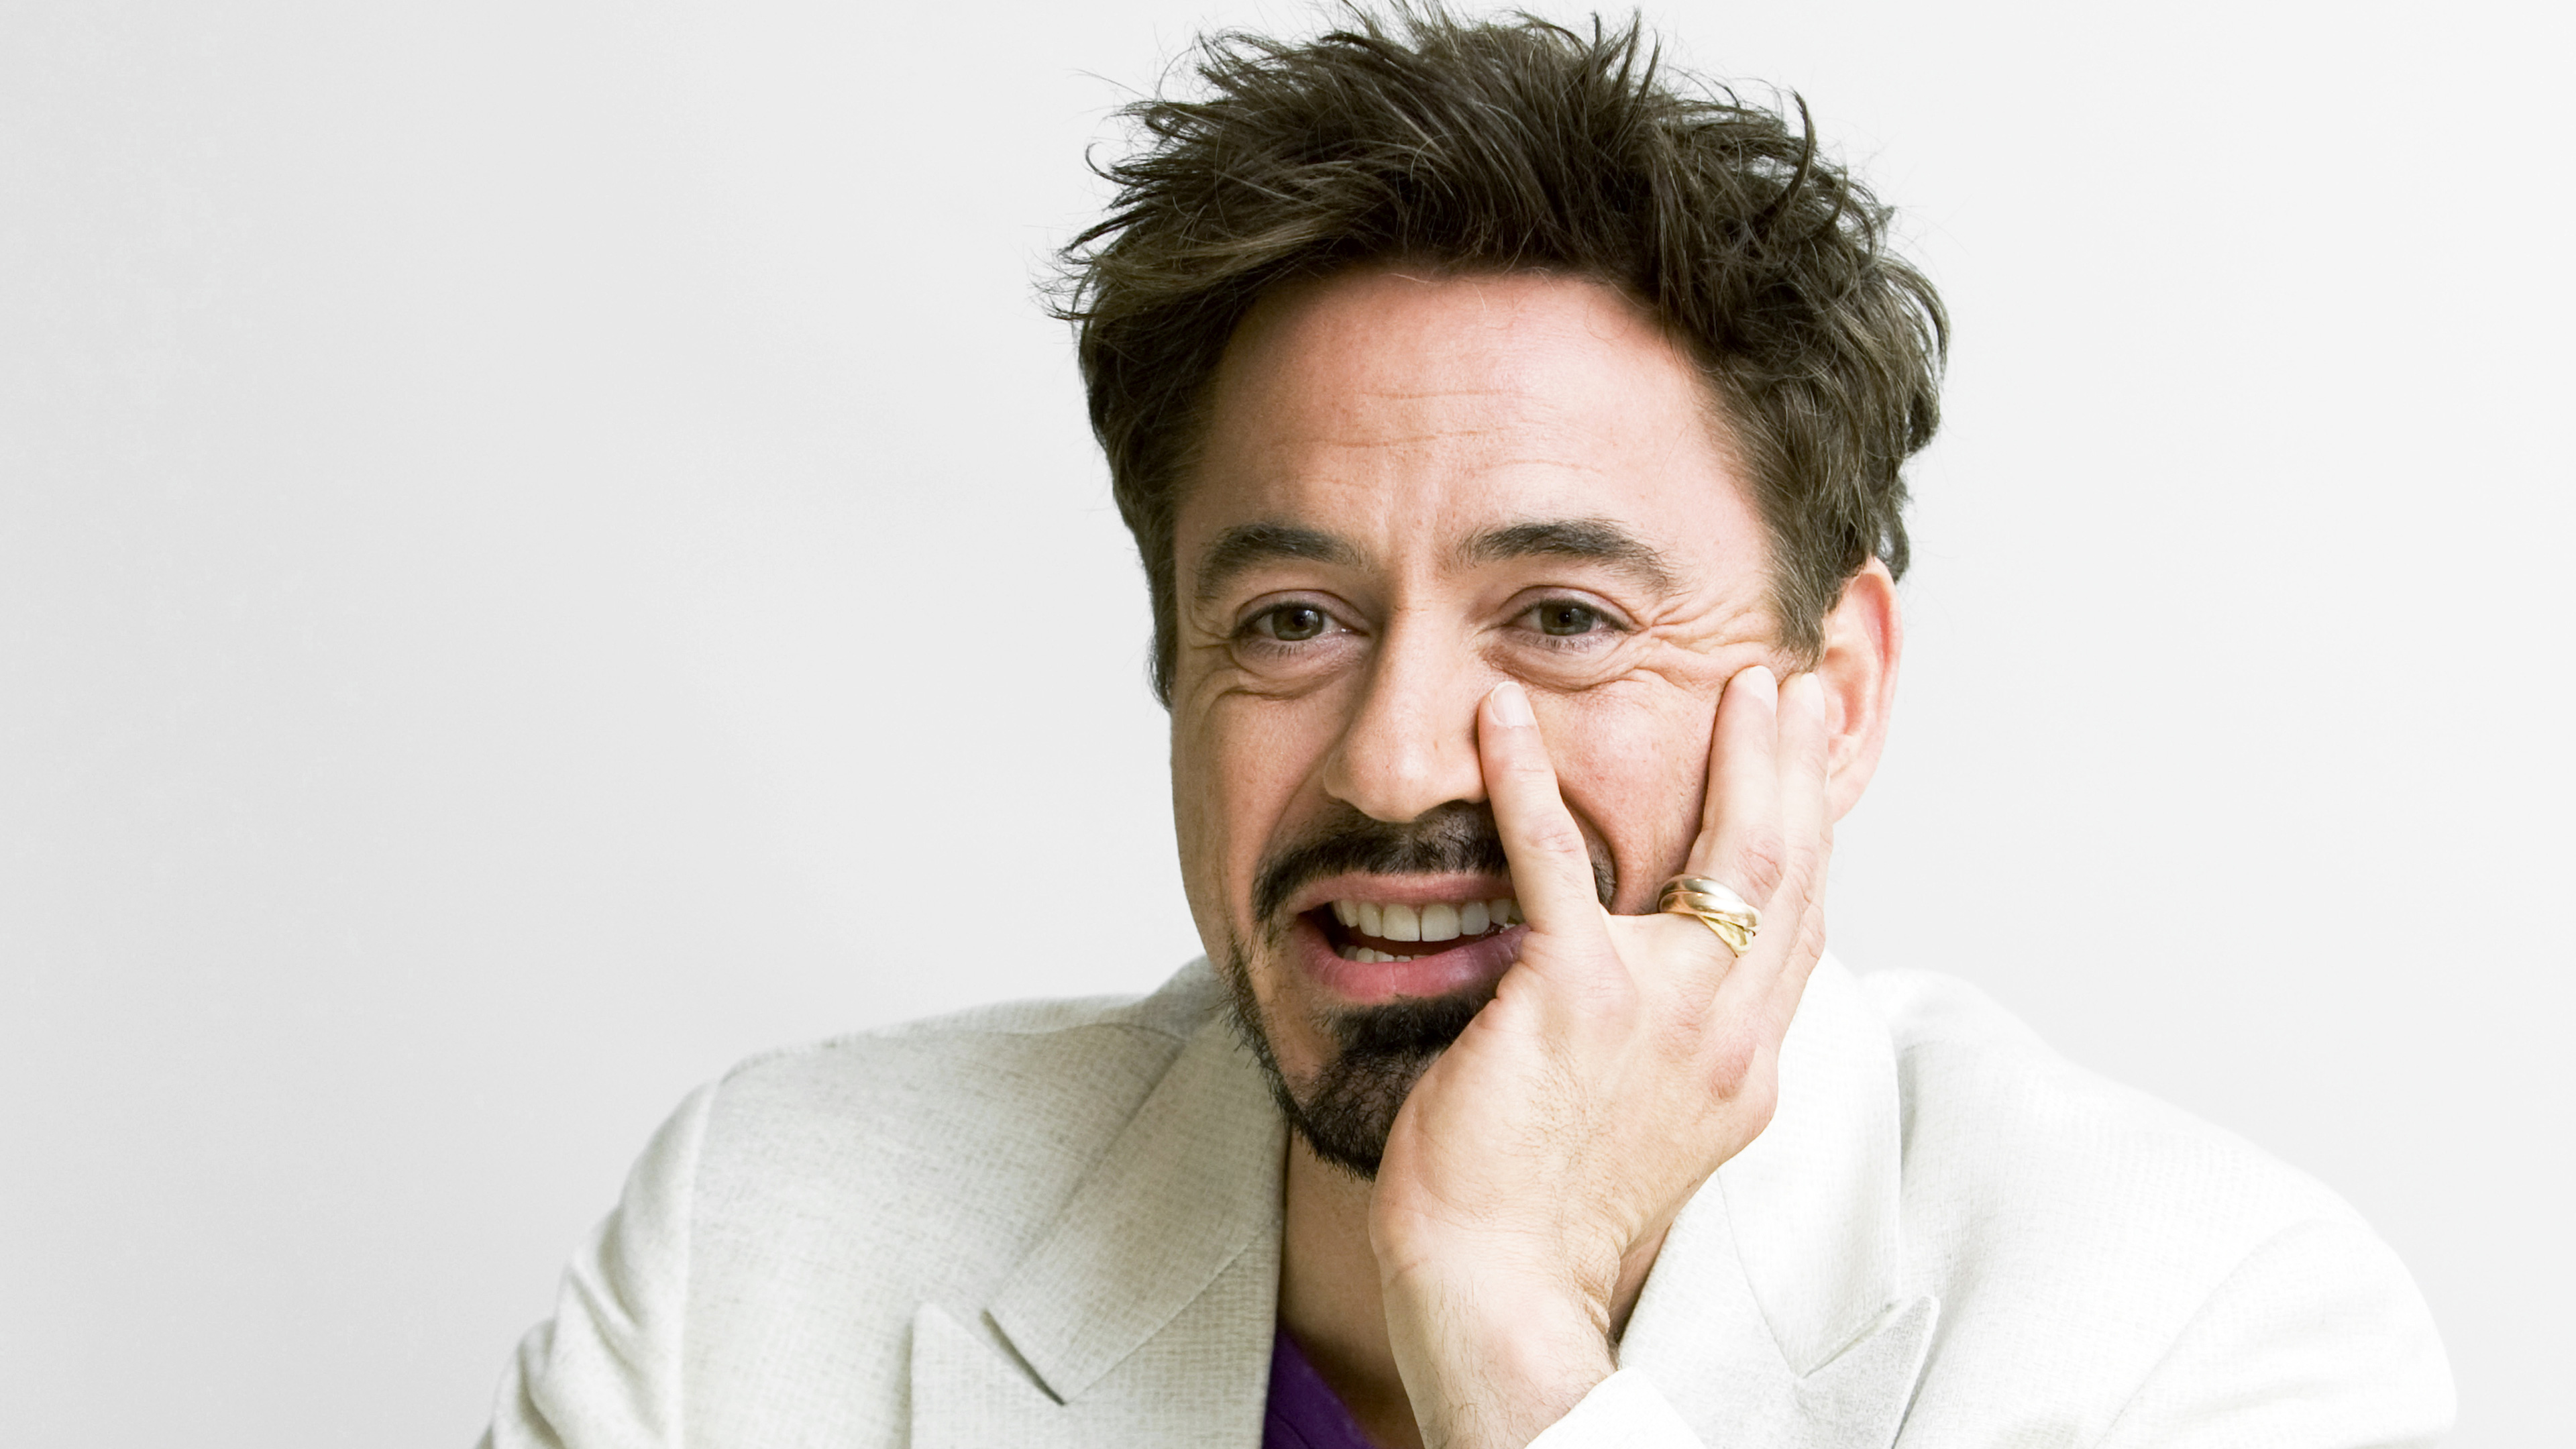 Downey 4k Wallpapers For Your Desktop Or Mobile Screen Free And Easy To Download